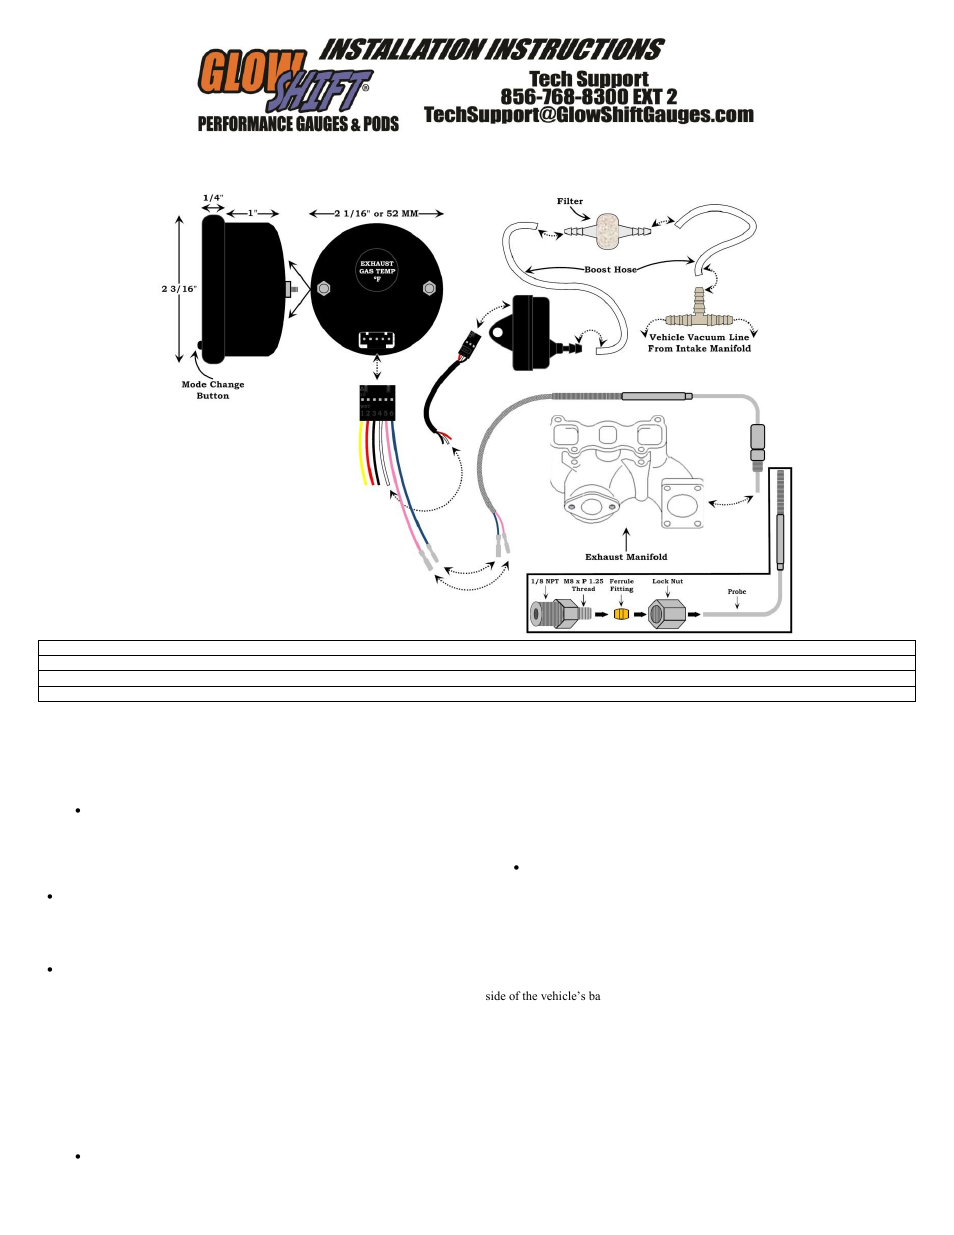 2006 Dodge Dakota Fuel Filter Location moreover P 0996b43f8037d219 as well Discussion C21953 ds653640 likewise 2008 Buick Enclave Fuse Box Diagram Wiring Diagrams further 177624 Air Diesel Fuel Lines What Else Change Out. on cabin filter location